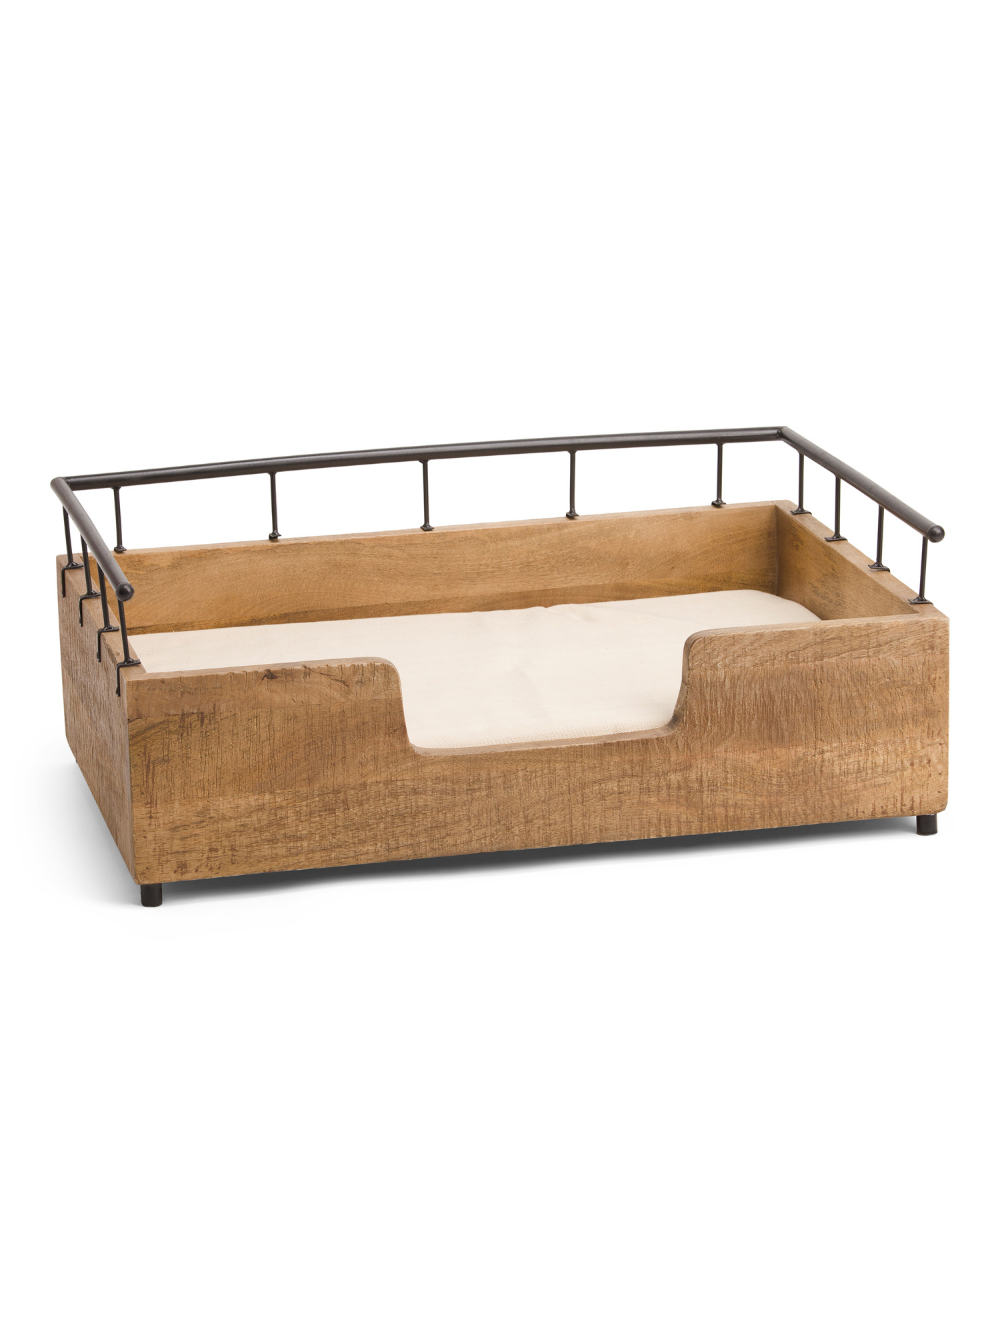 Carved Wooden Dog Bed Pet T.J.Maxx in 2020 Wooden